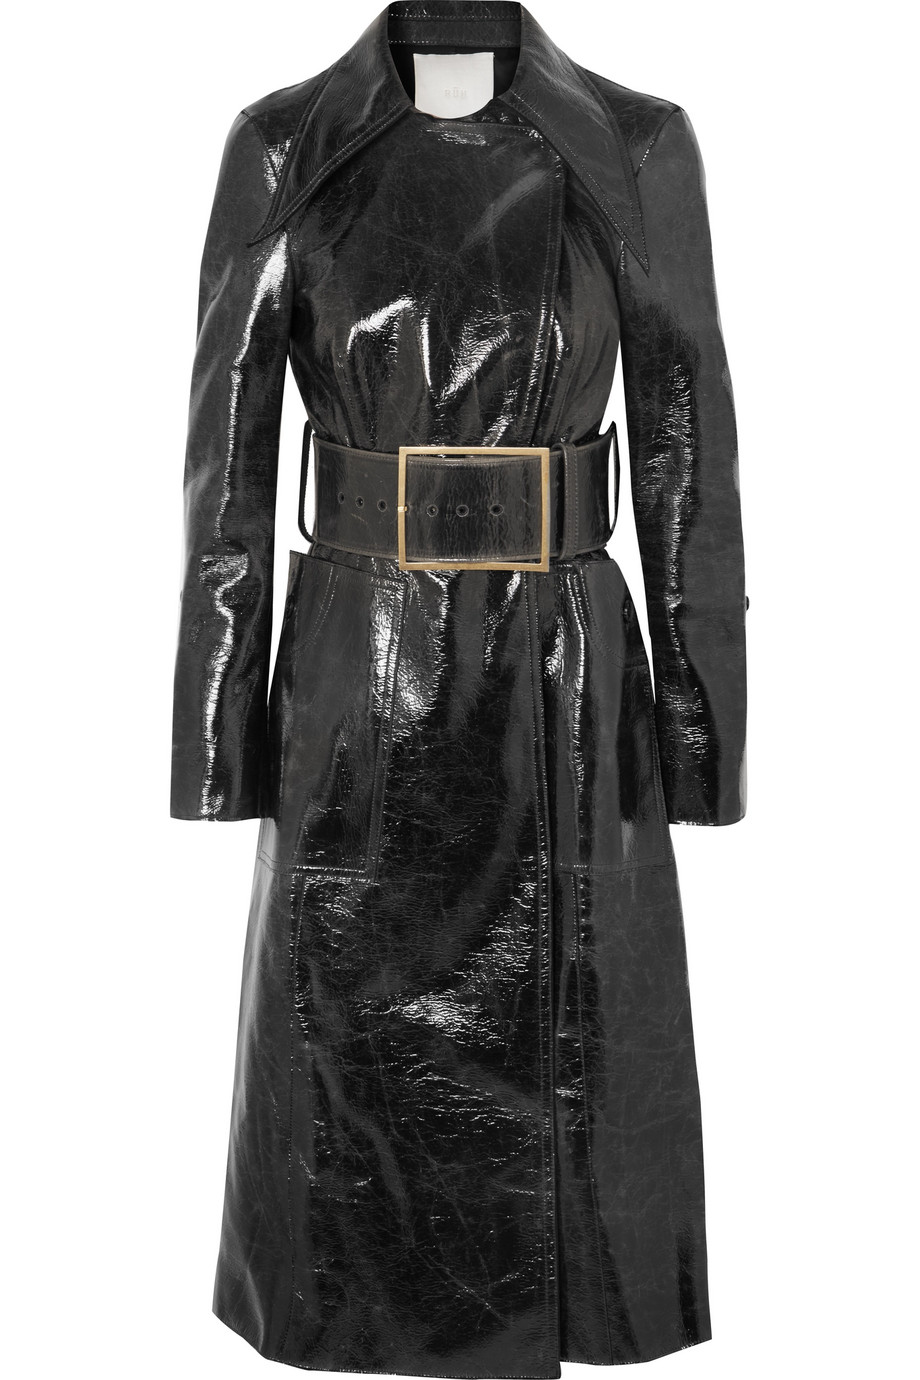 RŪH Coated wool-blend trench coat, £995